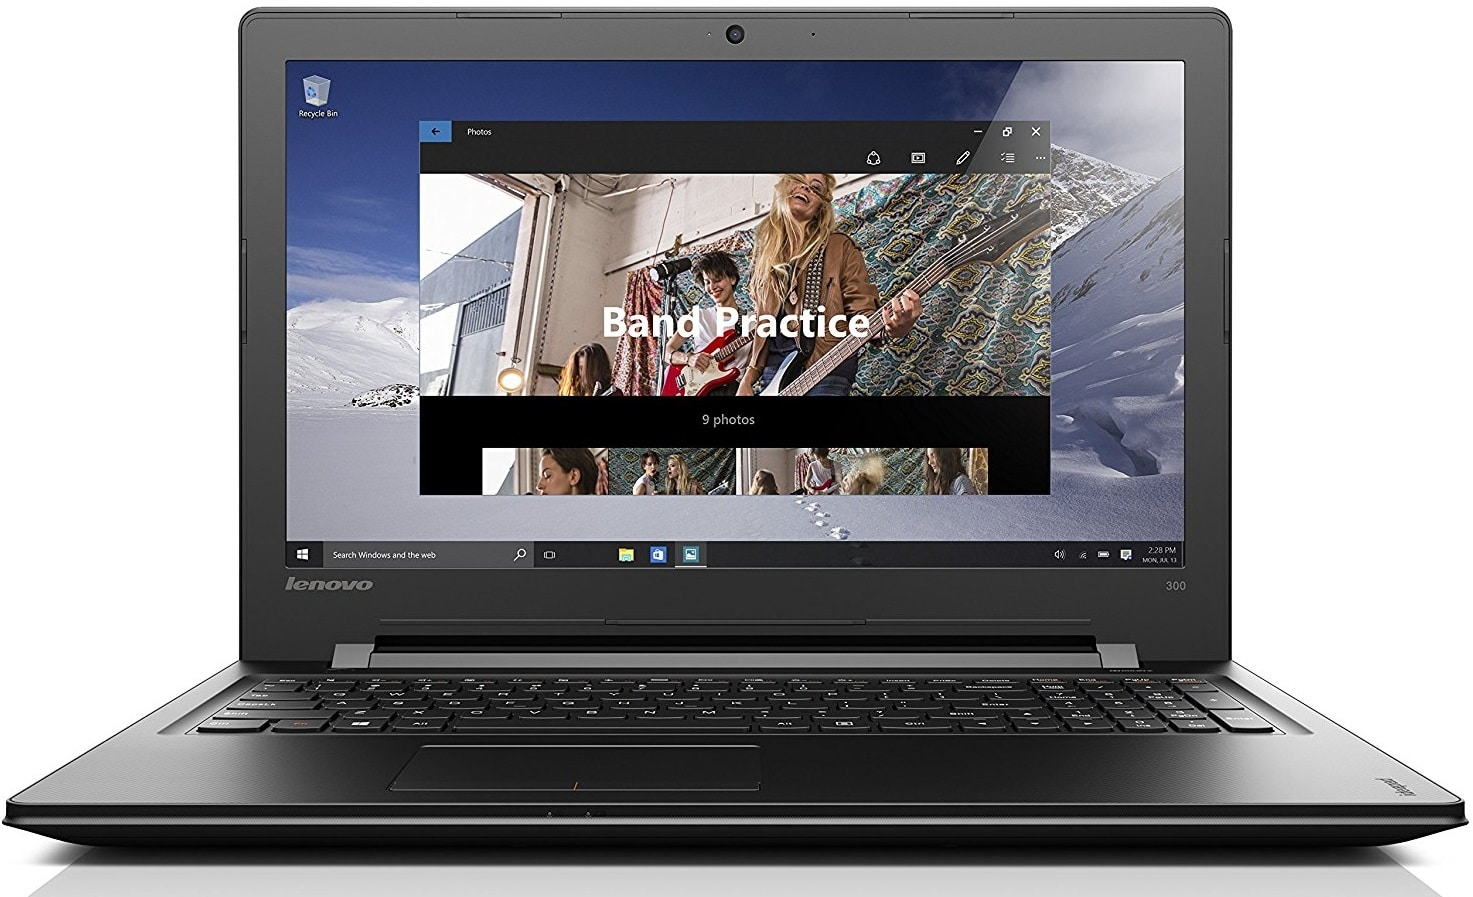 Lenovo ideapad 300 best laptop 17.3 inches under 600 pounds UK